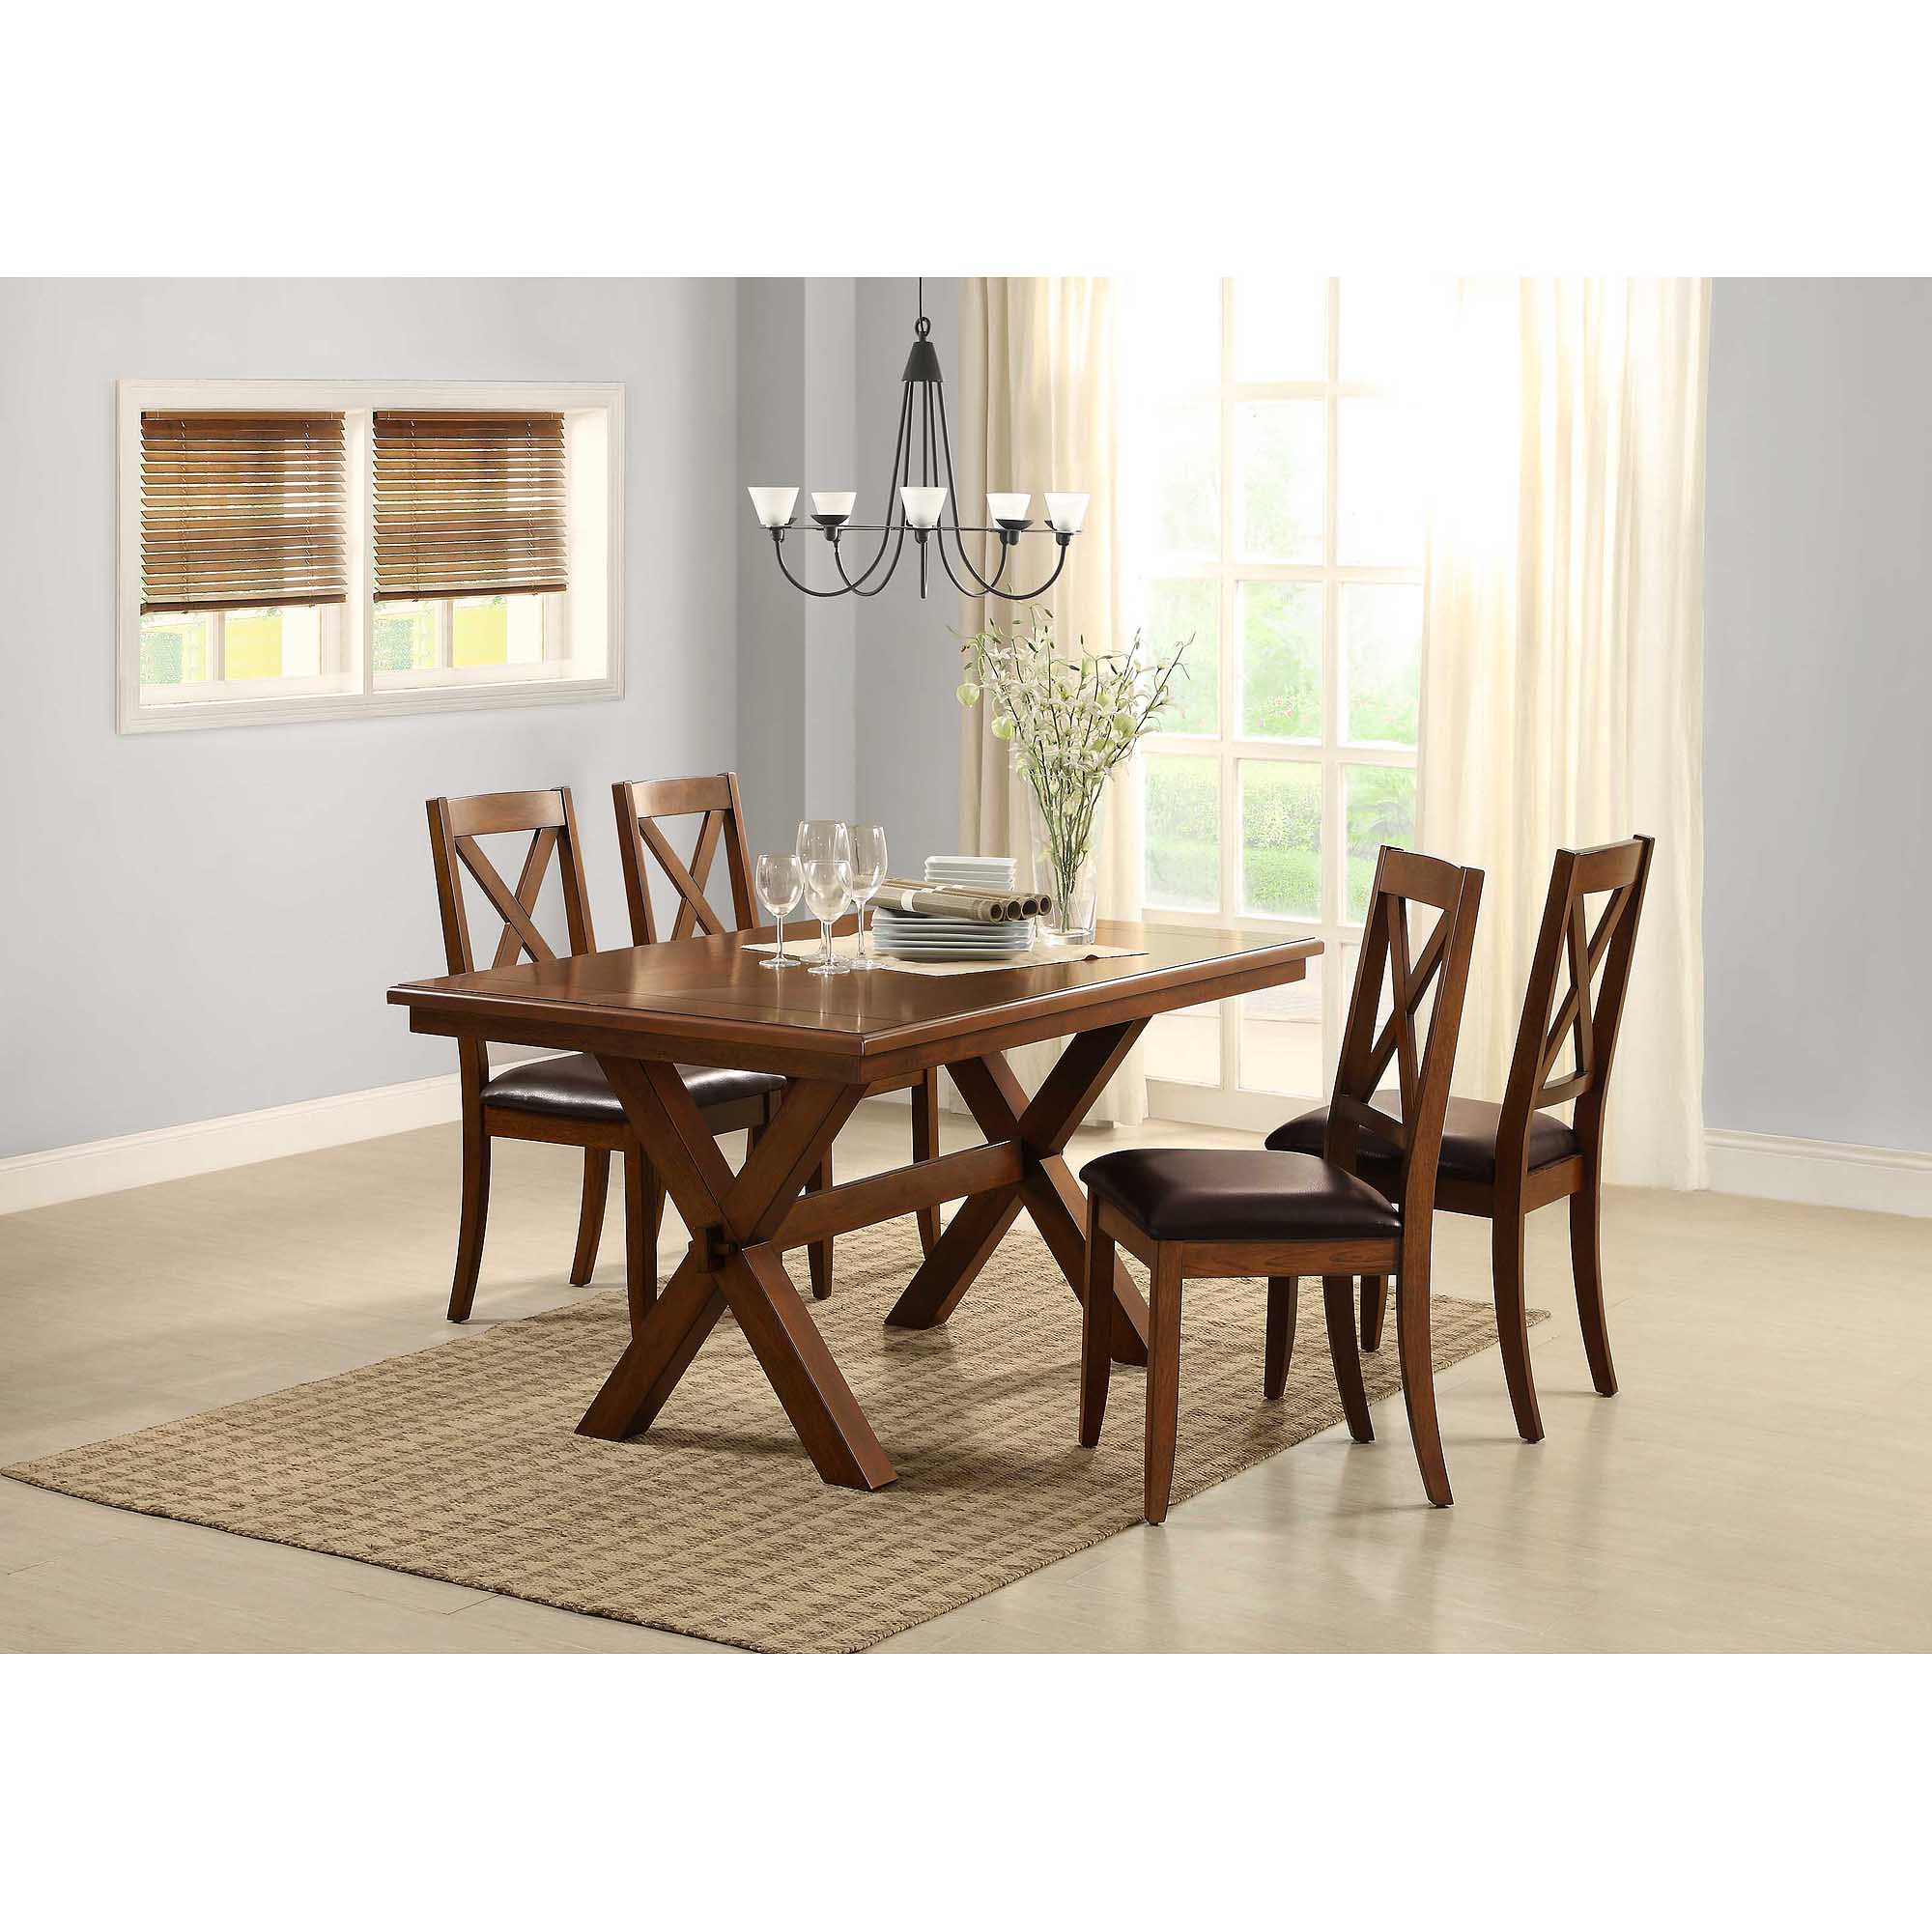 Marvelous Better Homes And Gardens Maddox Crossing Dining Table, Brown   Walmart.com